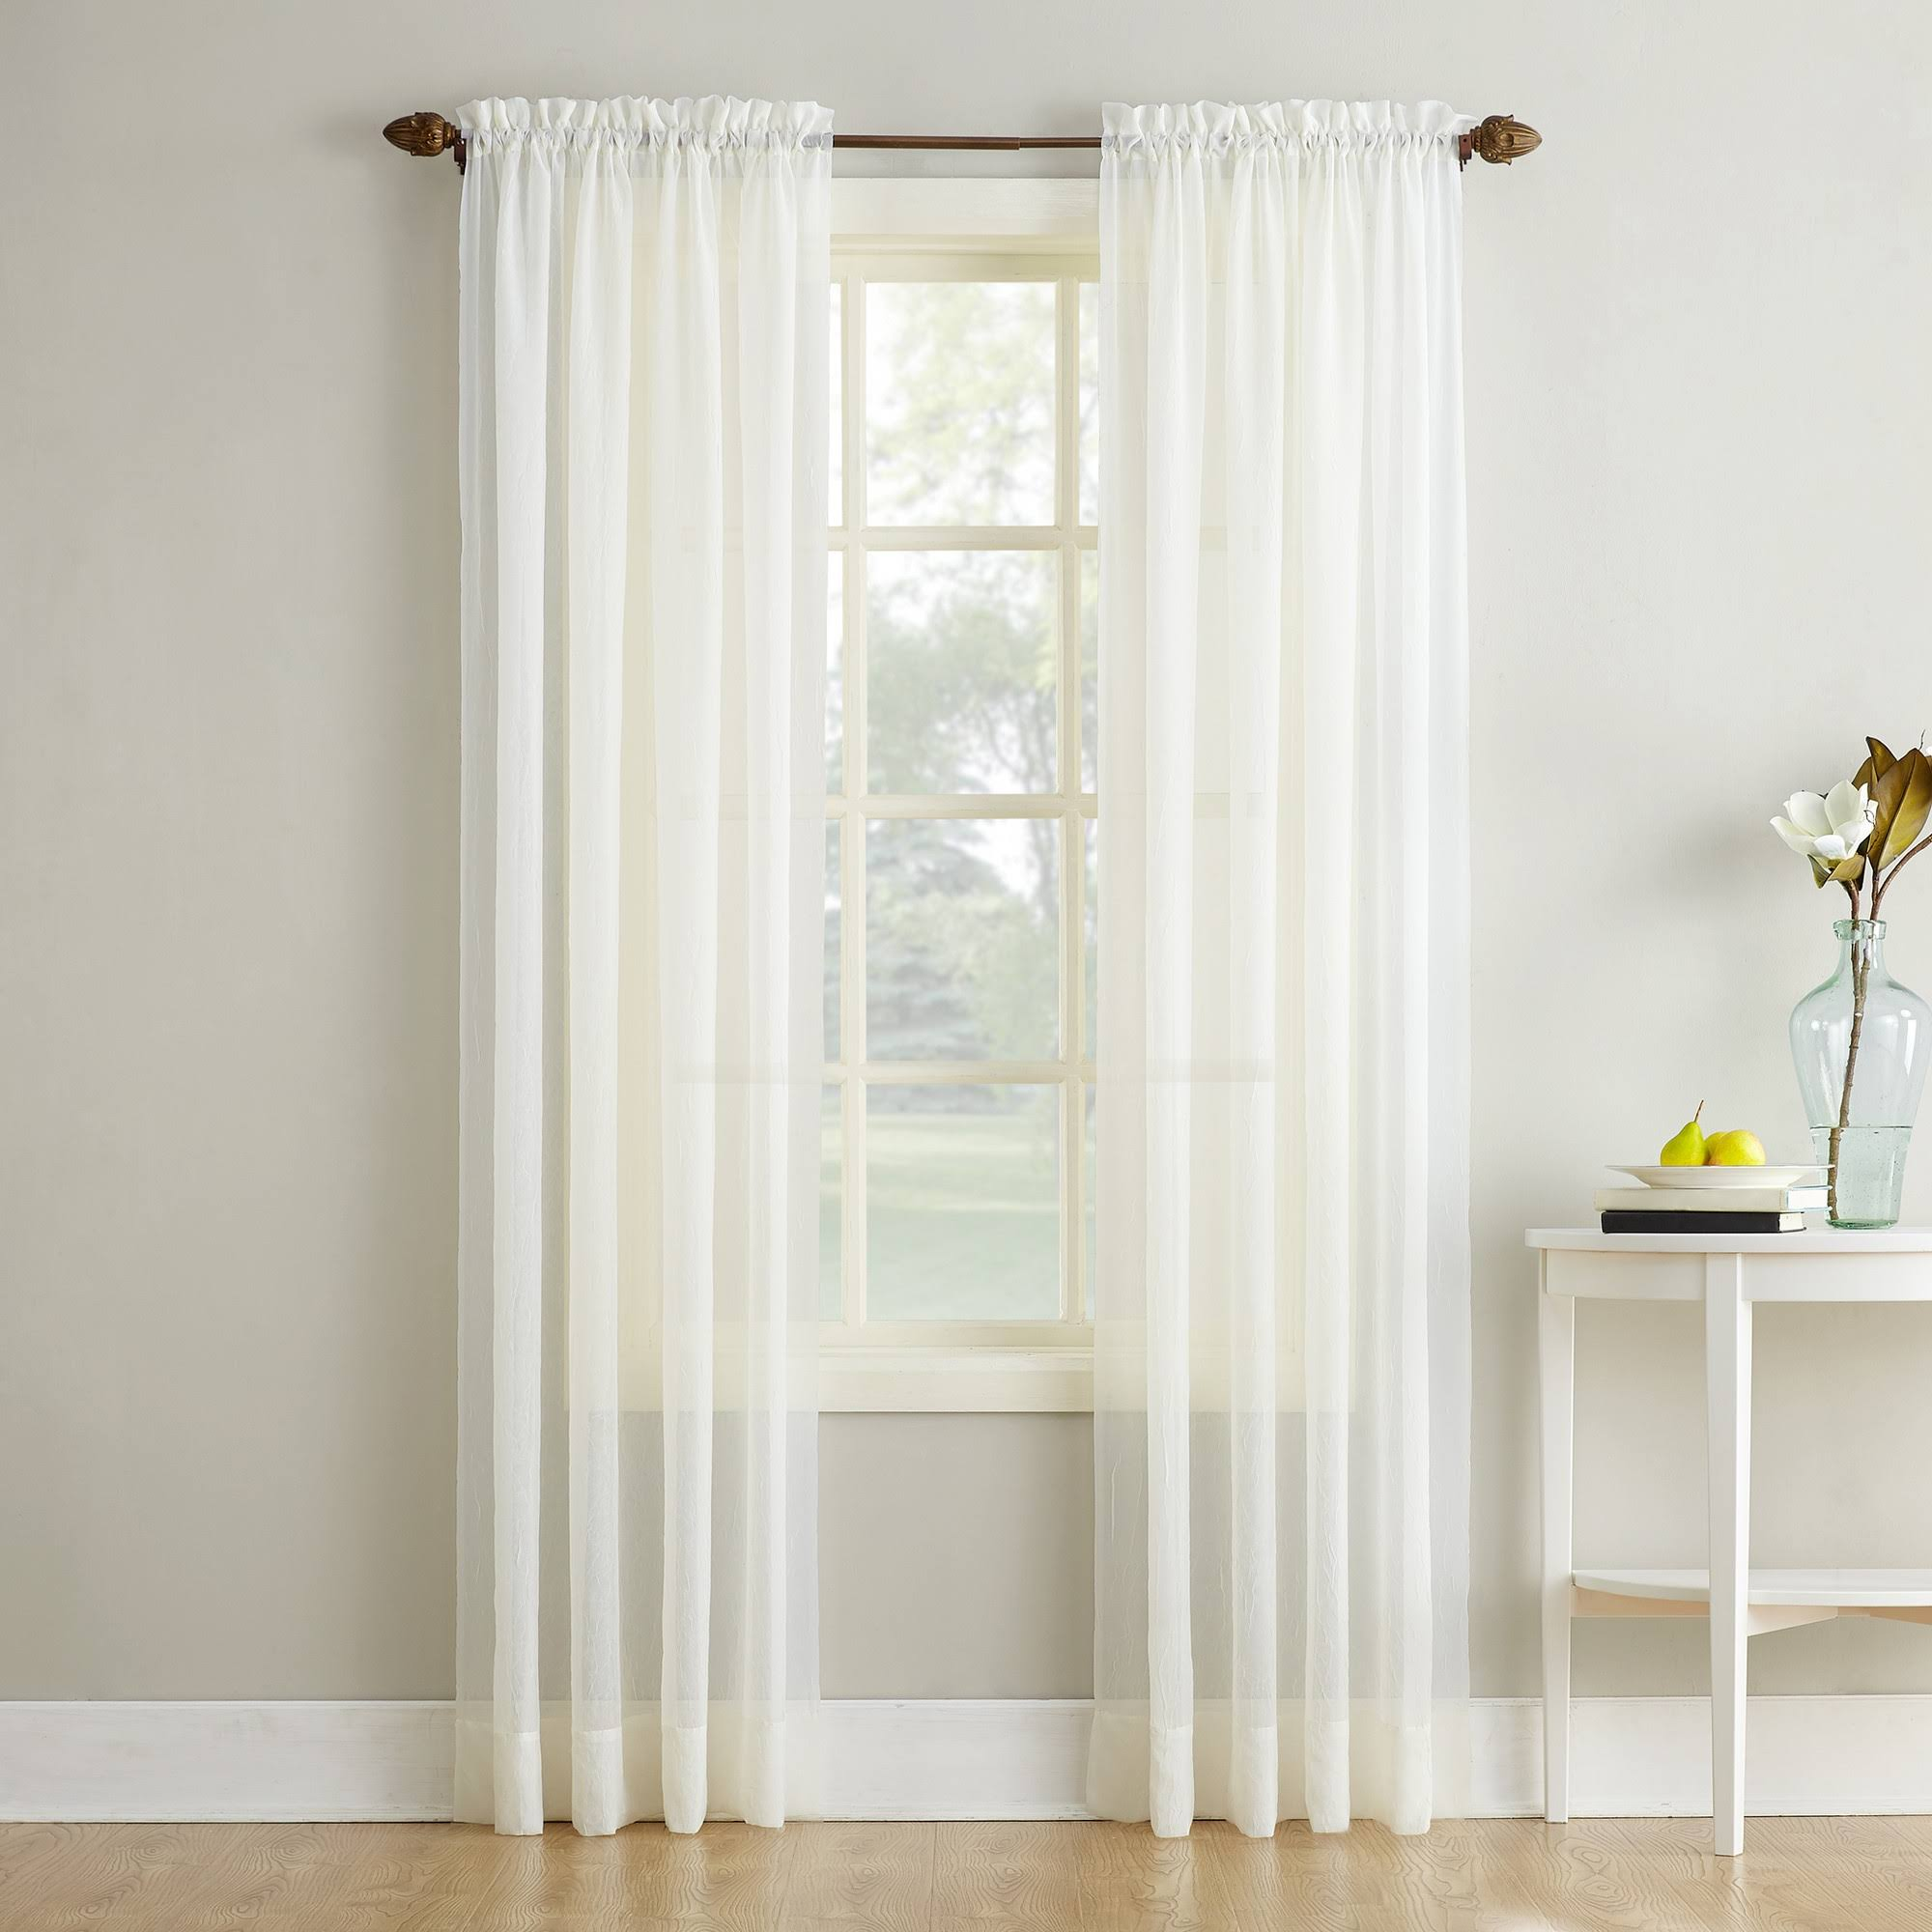 No. 918 Erica Crushed Texture Sheer Voile Curtain Panel, Eggshell